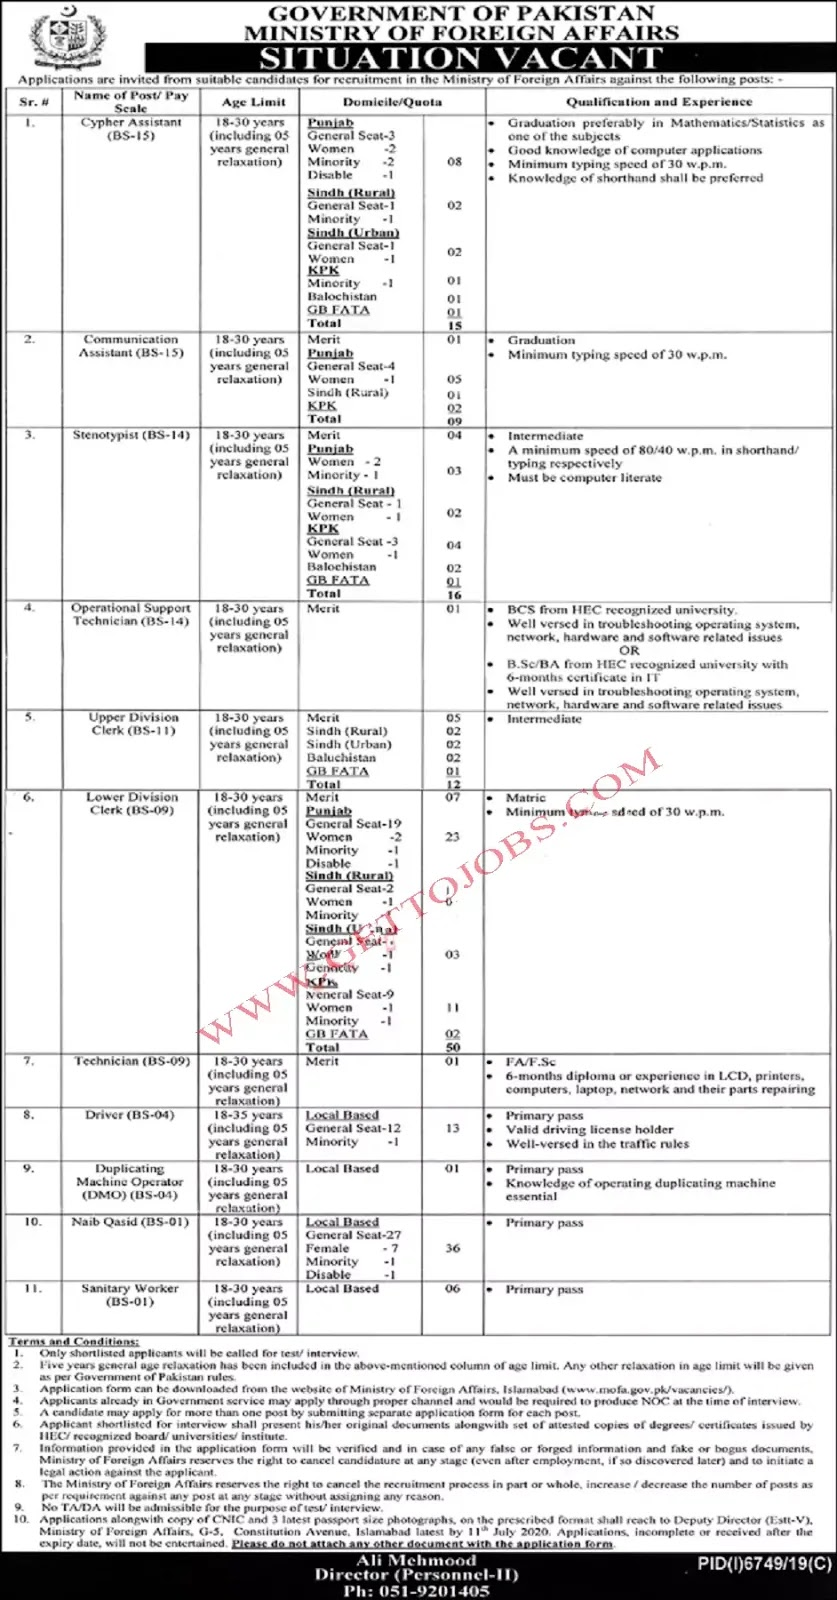 MINISTRY OF FOREIGN AFFAIRS JOBS 2020